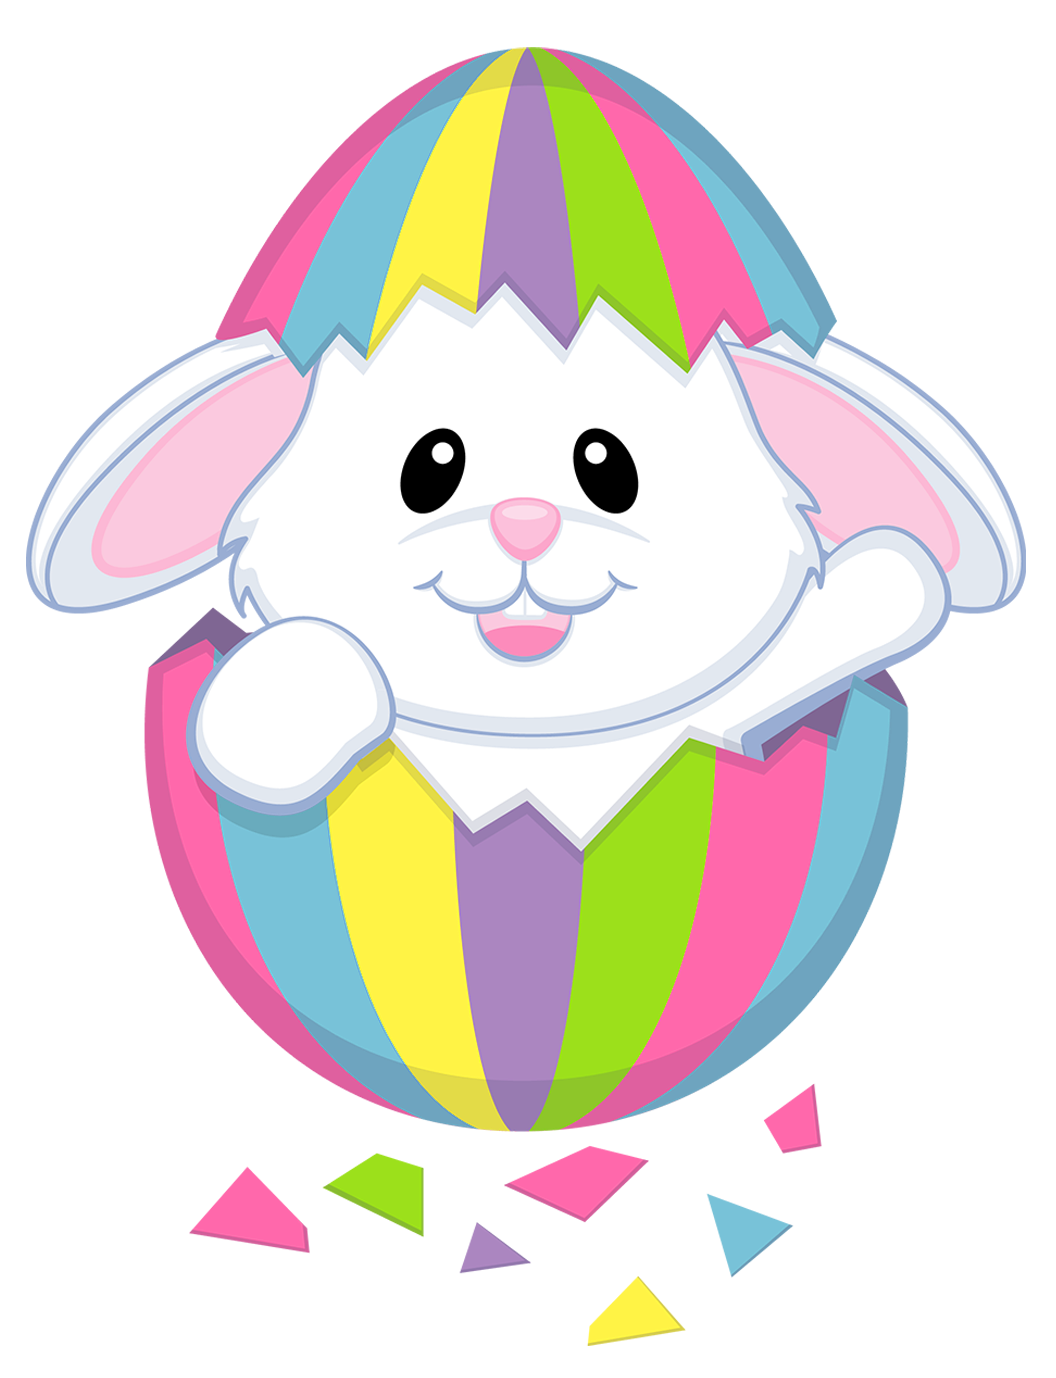 easter bunny clipart best easter eggs pinterest easter bunny rh pinterest com easter clipart for facebook easter clipart black and white